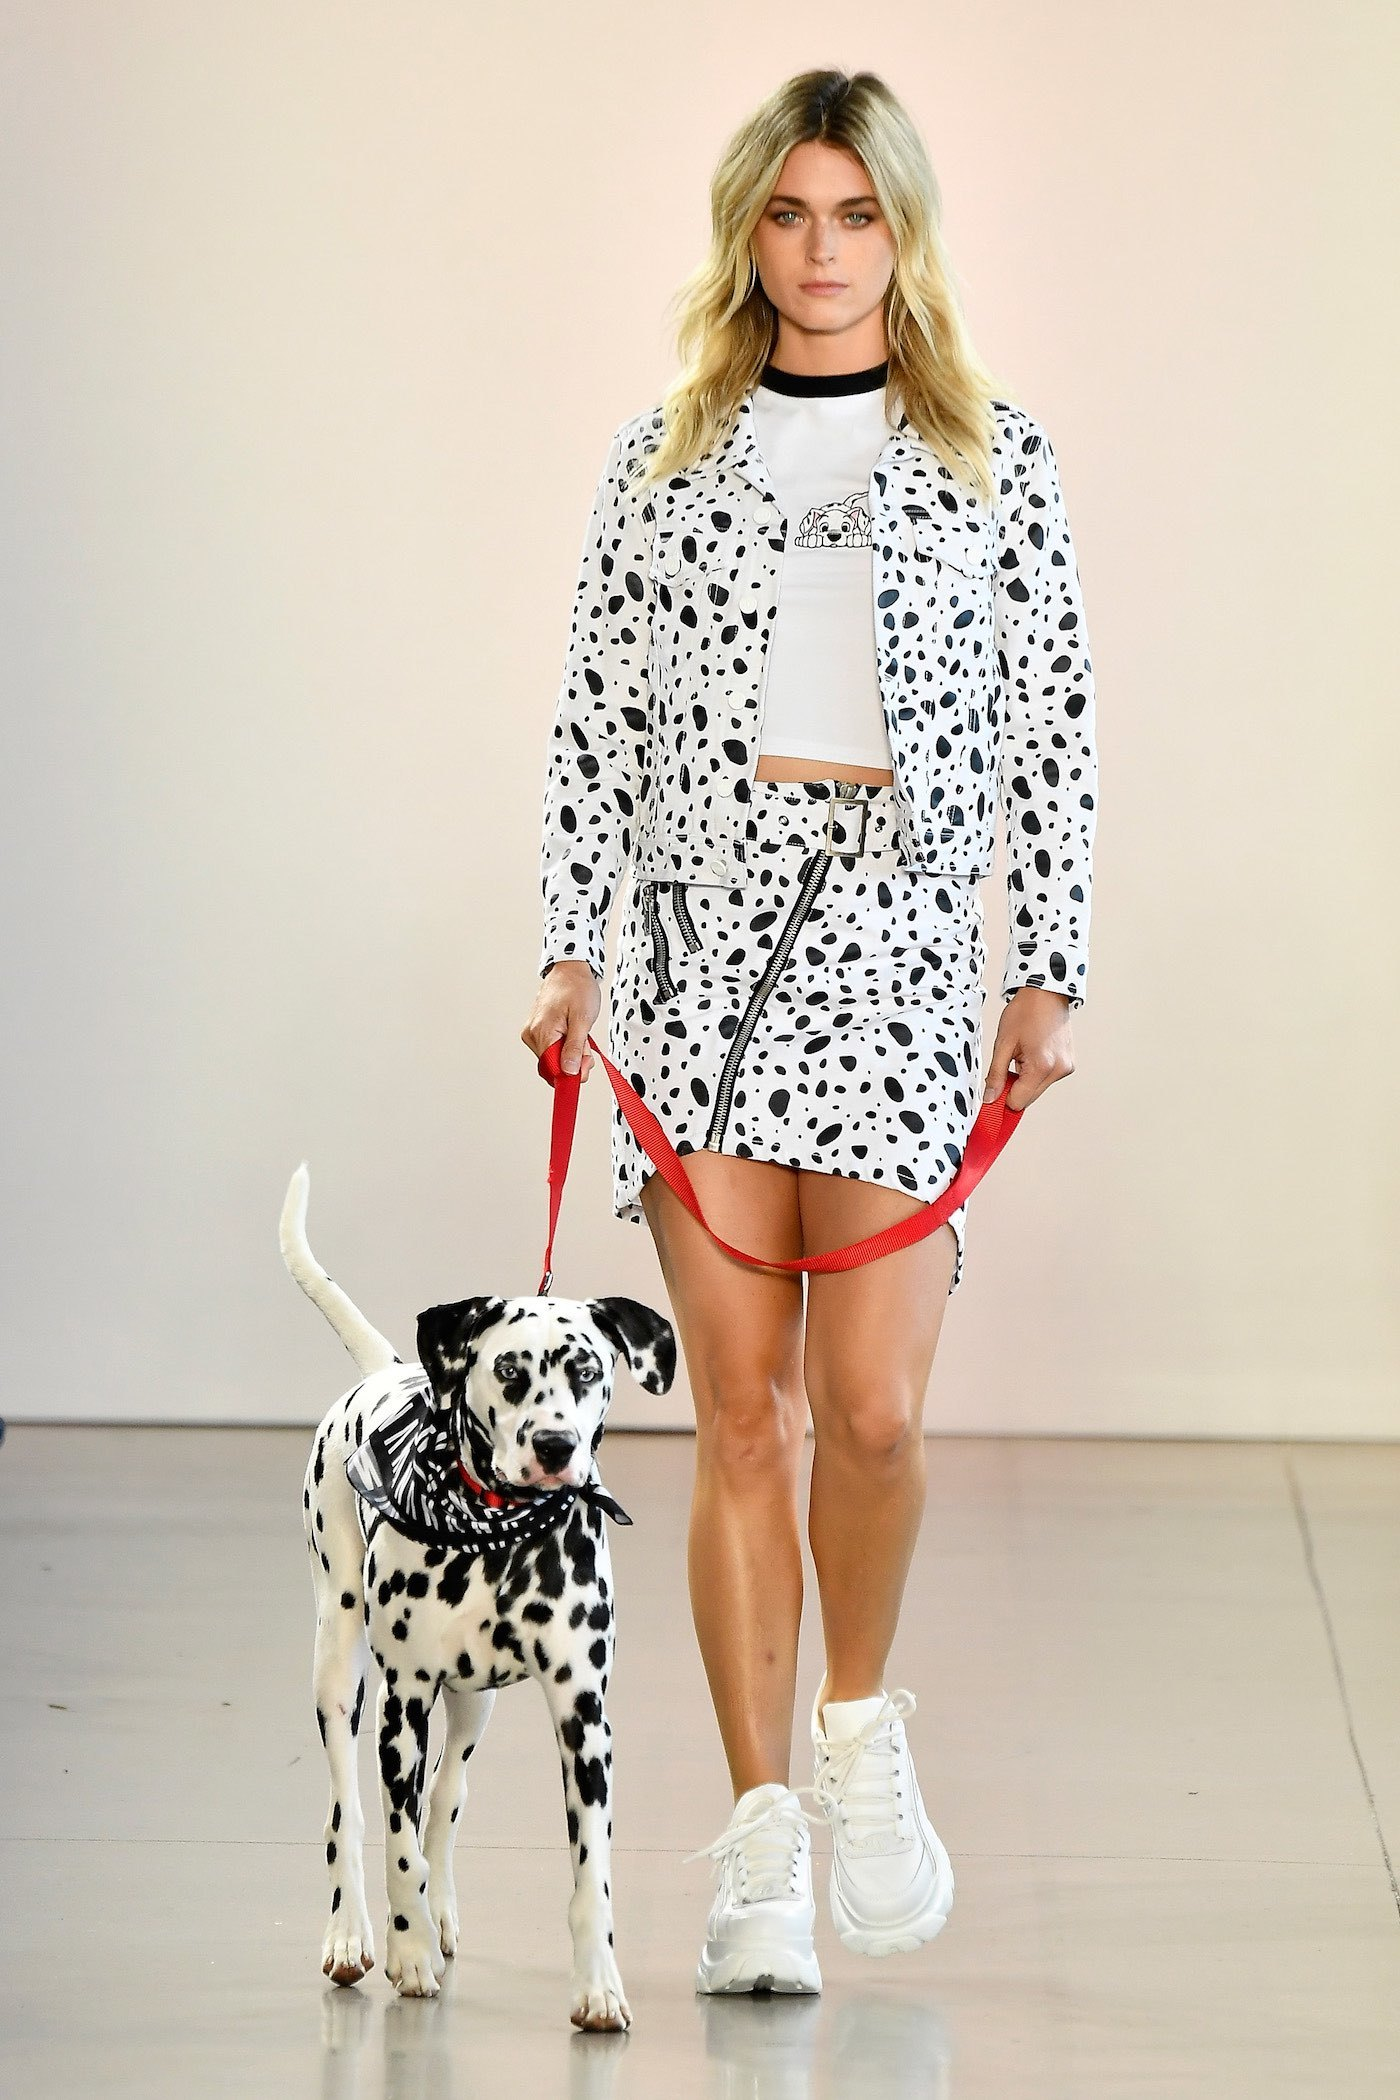 Model sporting 101 Dalmatian outfit by NANA JUDY